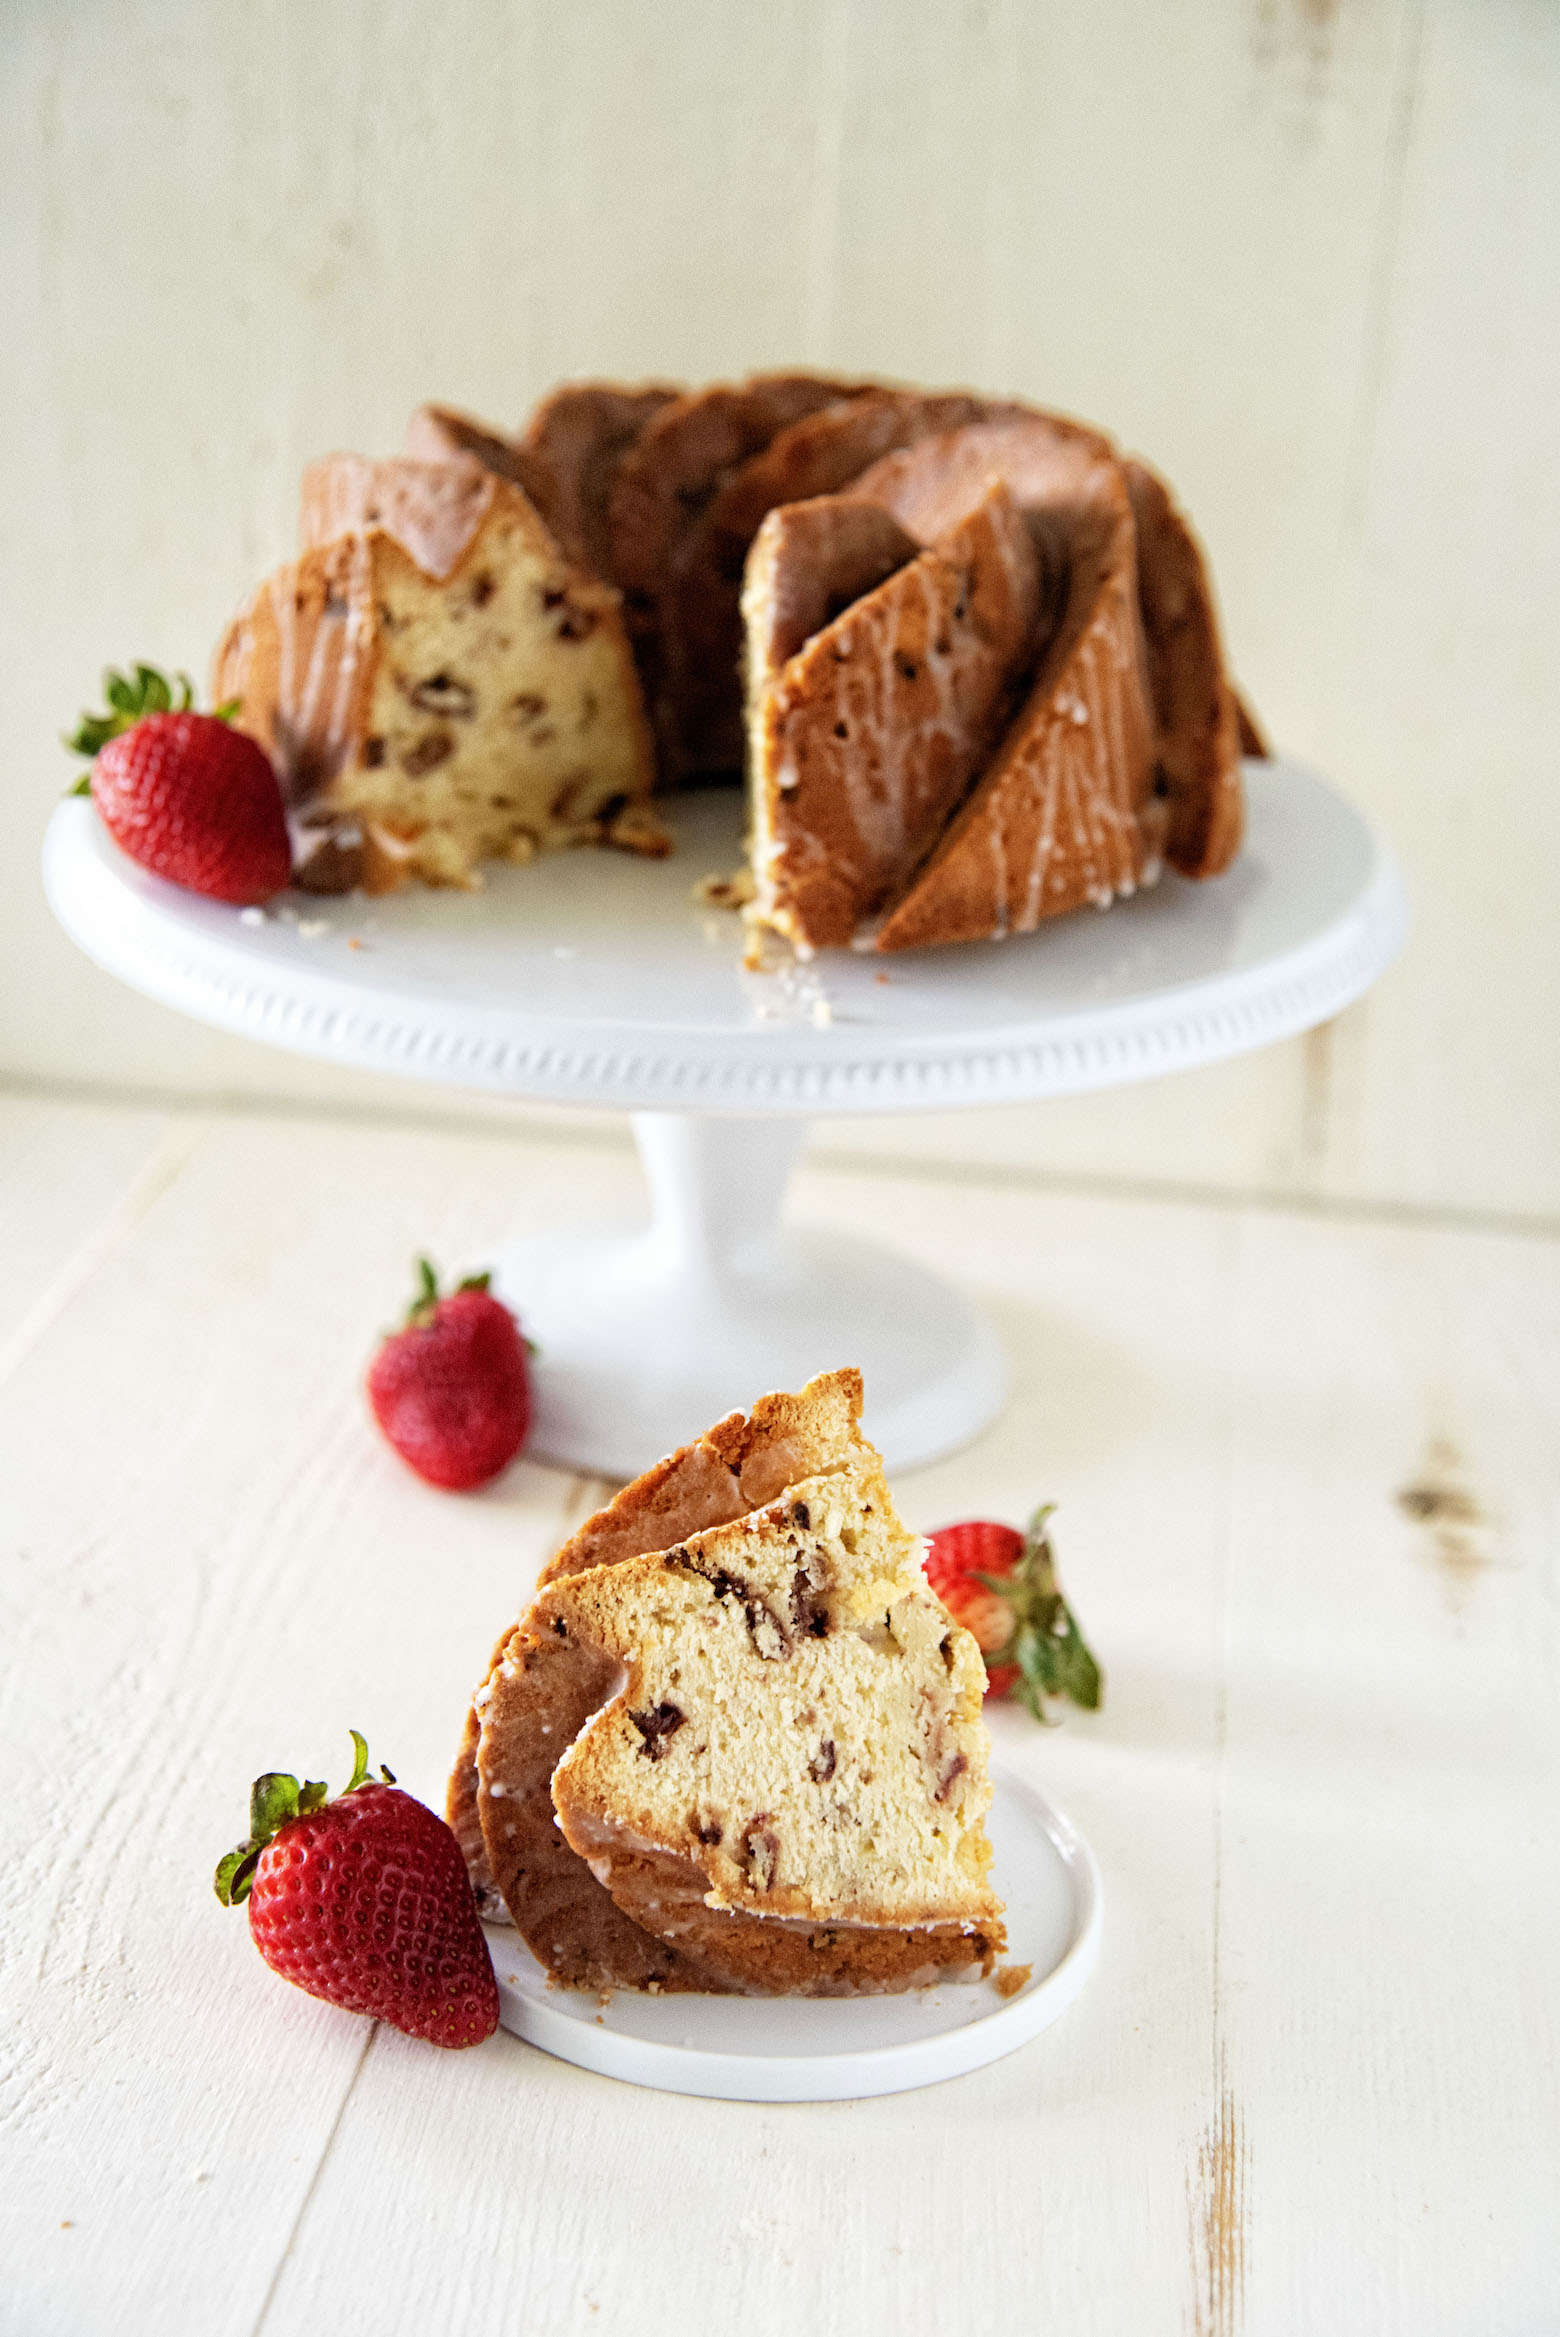 Strawberry Lemonade Bundt Cake